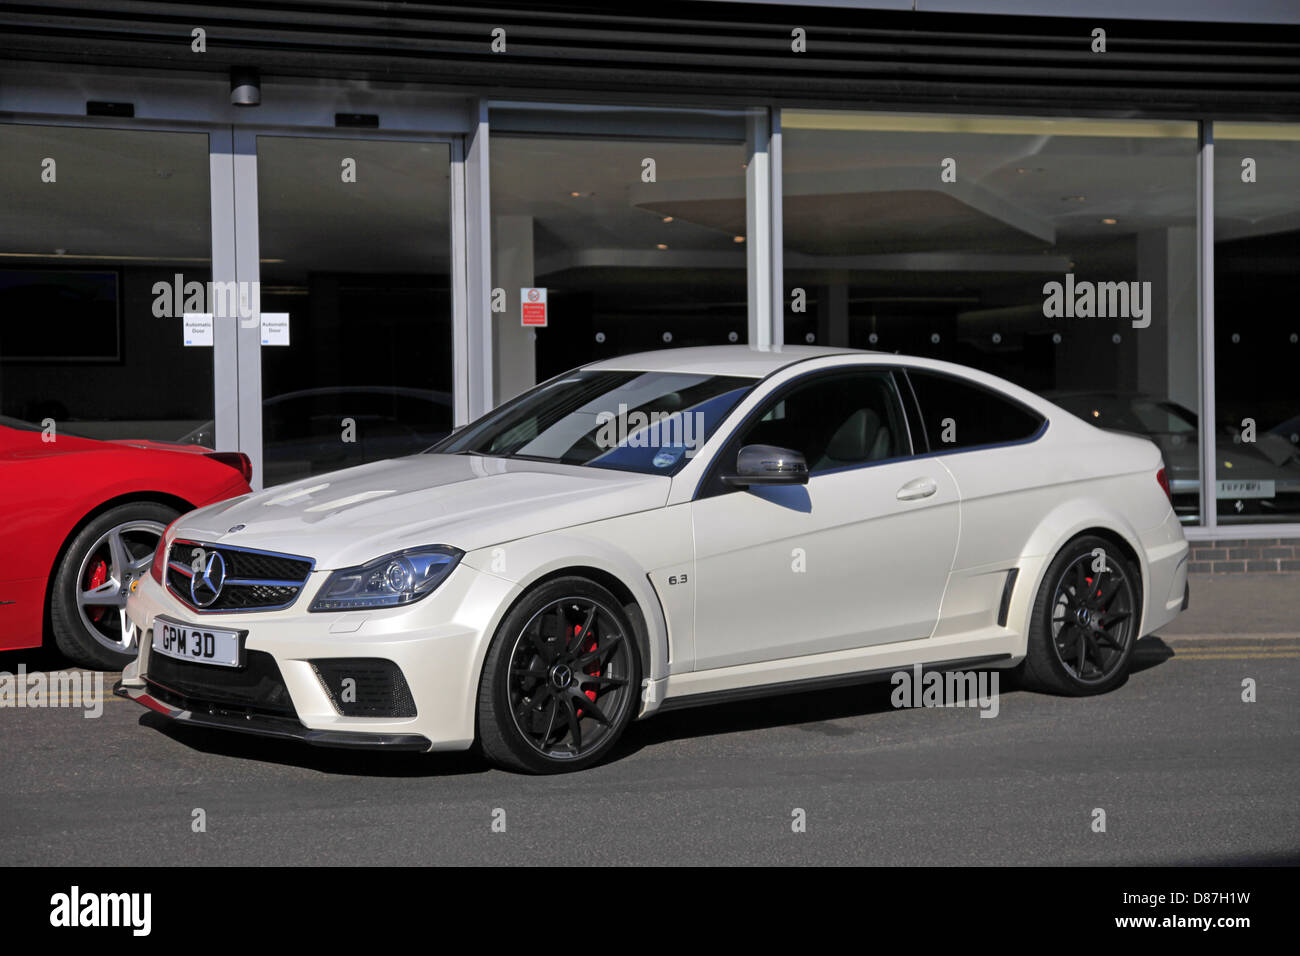 white mercedes c63 amg black car wilmslow manchester england 05 april stock photo 56715397 alamy. Black Bedroom Furniture Sets. Home Design Ideas